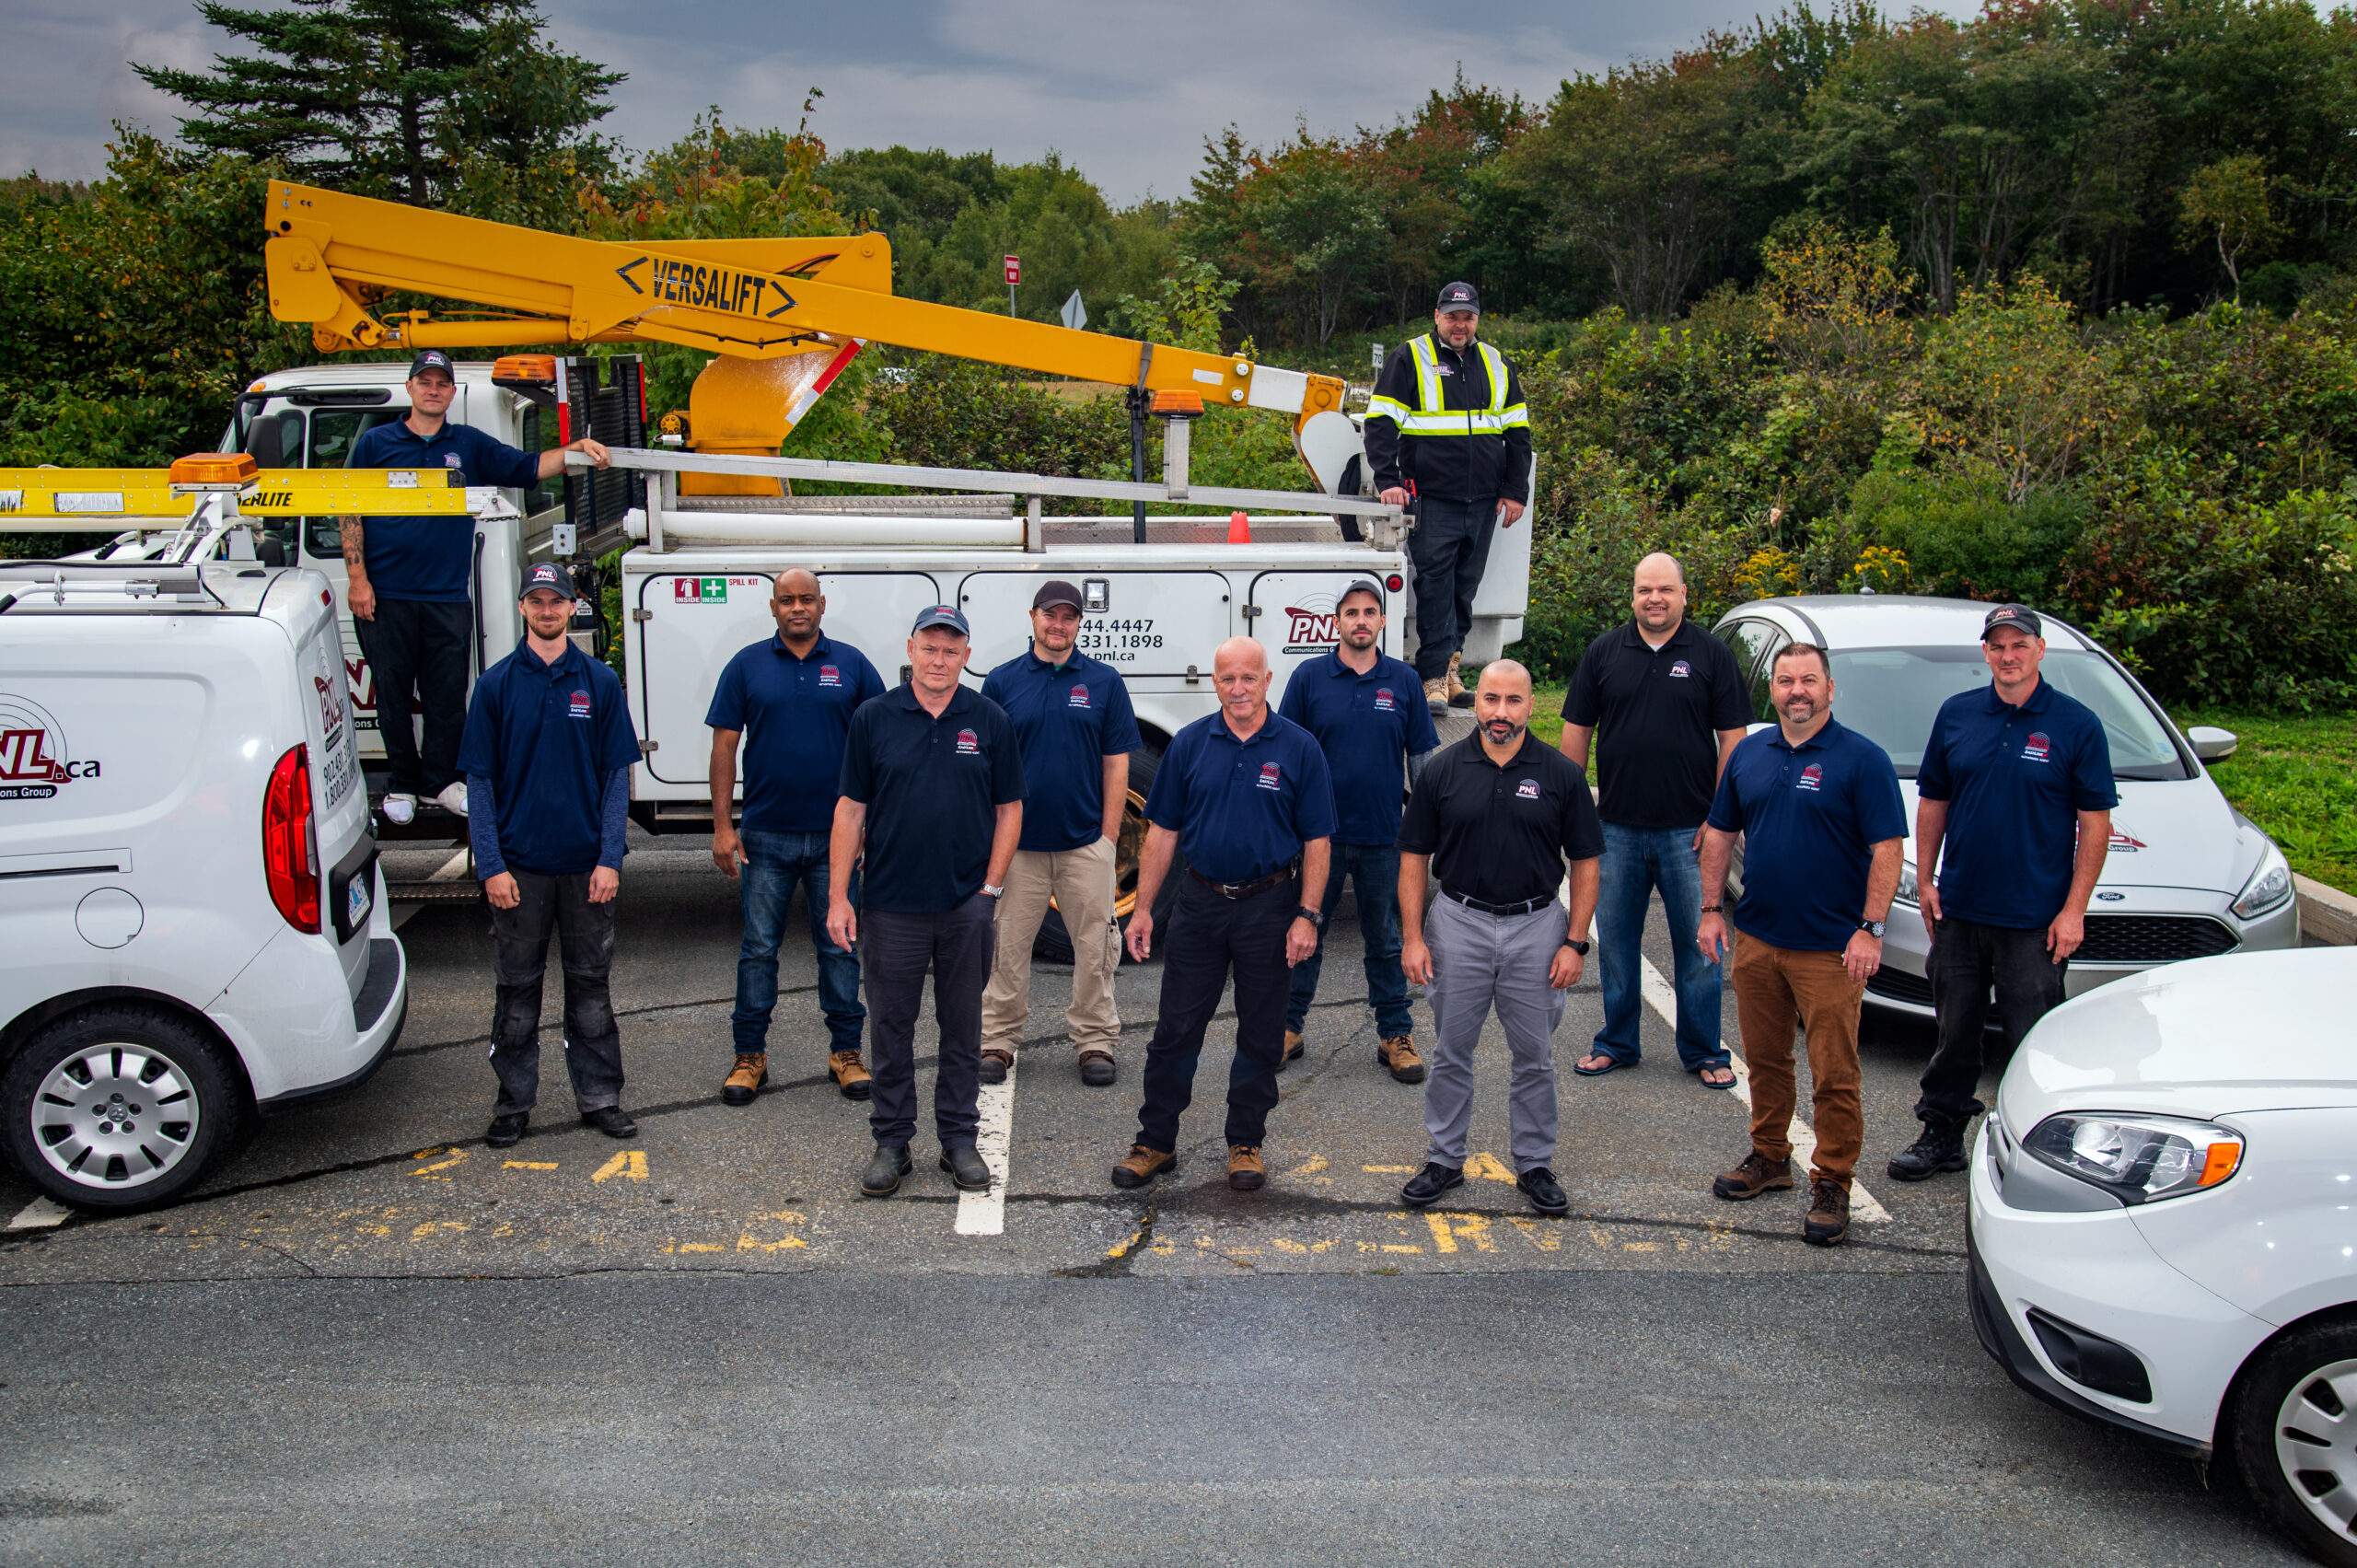 PNL Electrical Contracting Employees with boom truck